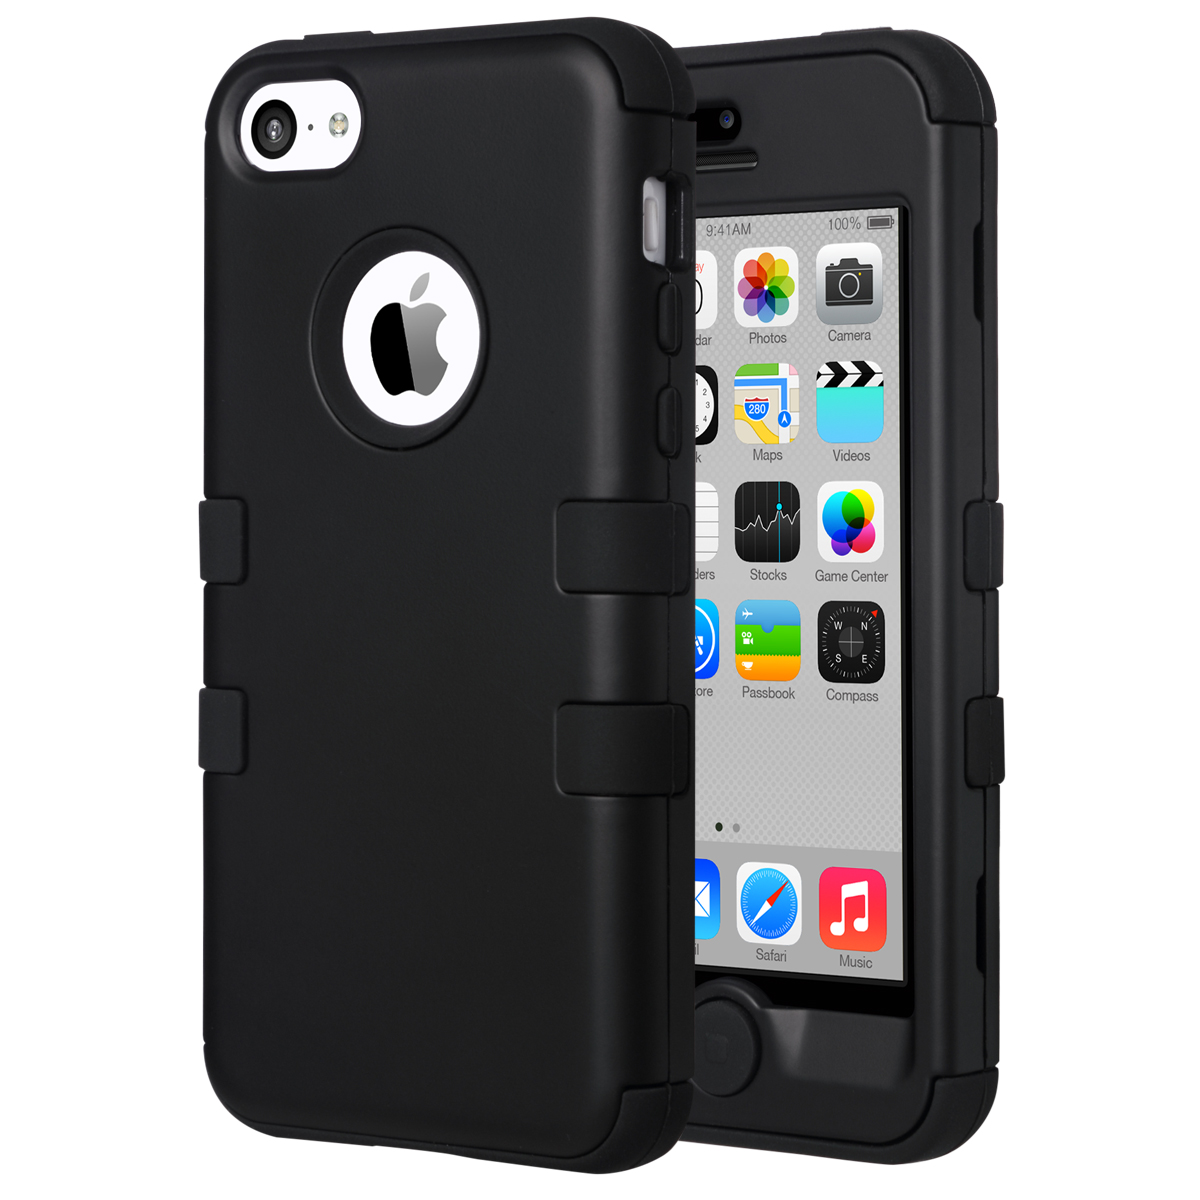 ULAK iPhone 5C Case, [Colorful Series] 3-Piece Hybrid Protector Case Soft Silicone Hard PC Cover for Apple iPhone 5